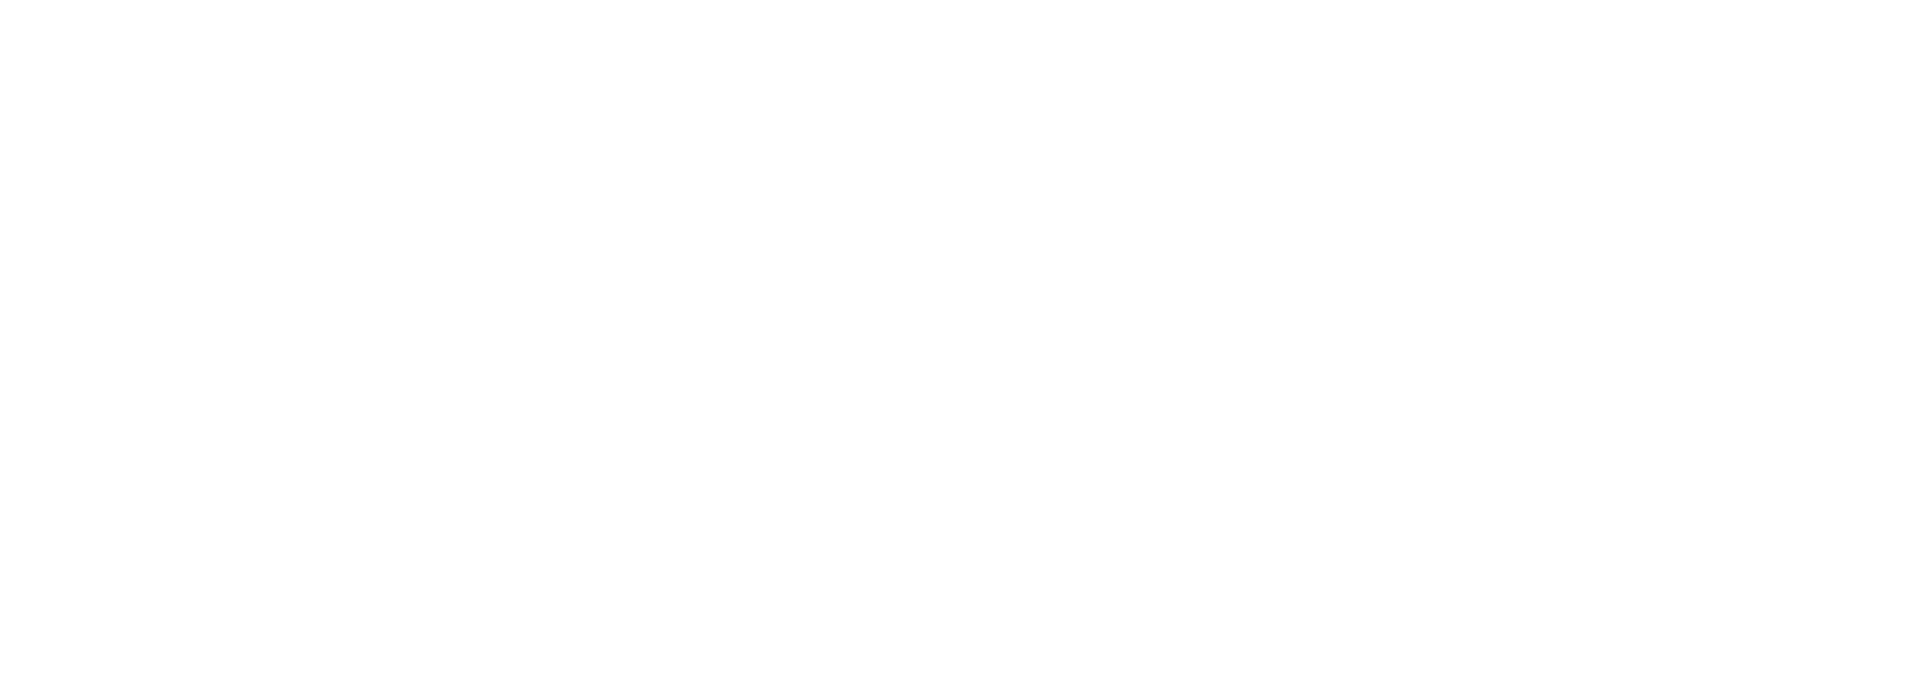 travel-insurance-for-groups-white-logo-no-worries-logo-transparent